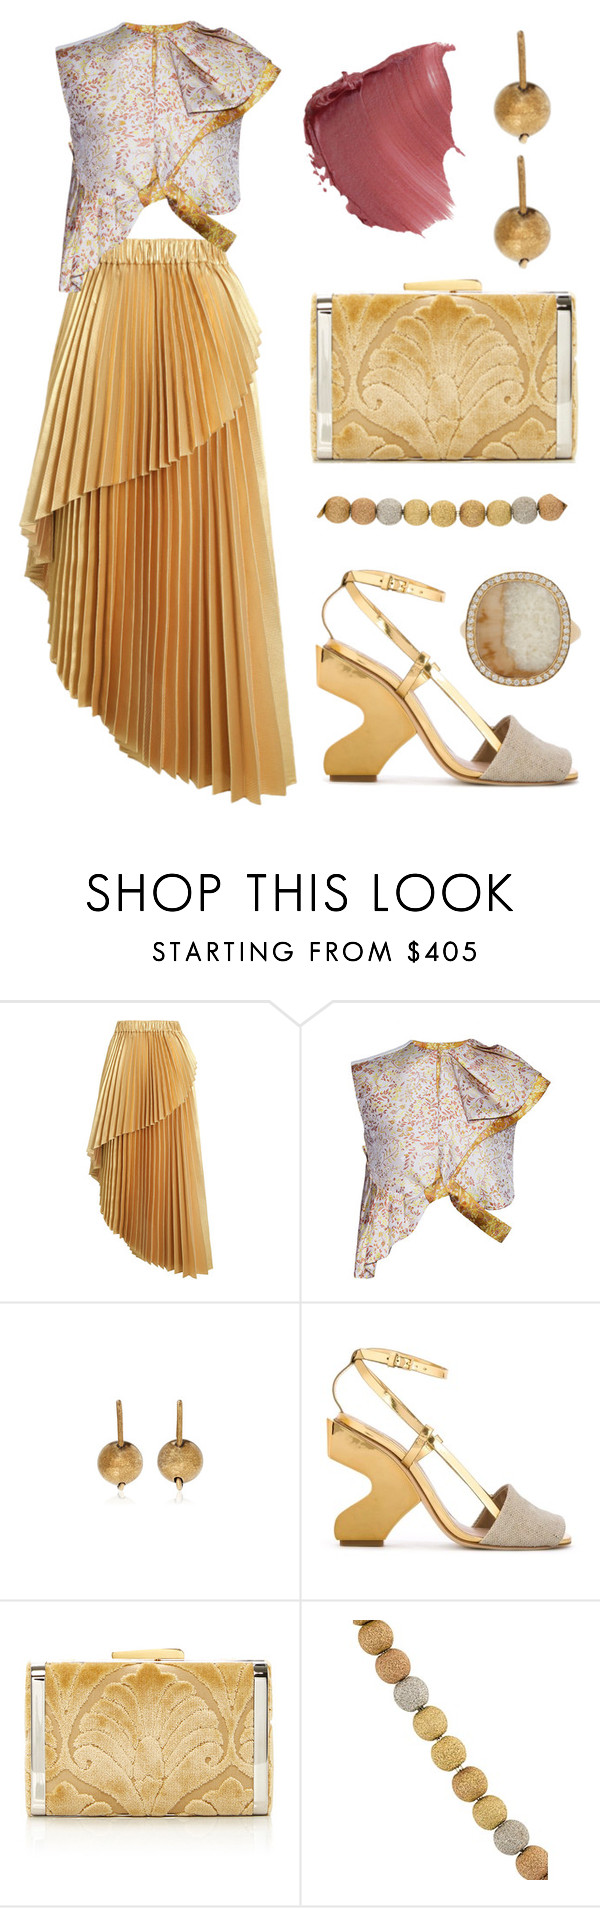 """""""Holiday Party - Metallics"""" by dominosfalldown ❤ liked on Polyvore featuring Zimmermann, Litkovskaya, J.W. Anderson, Tory Burch, Hayward, Carolina Bucci and Monique Péan"""